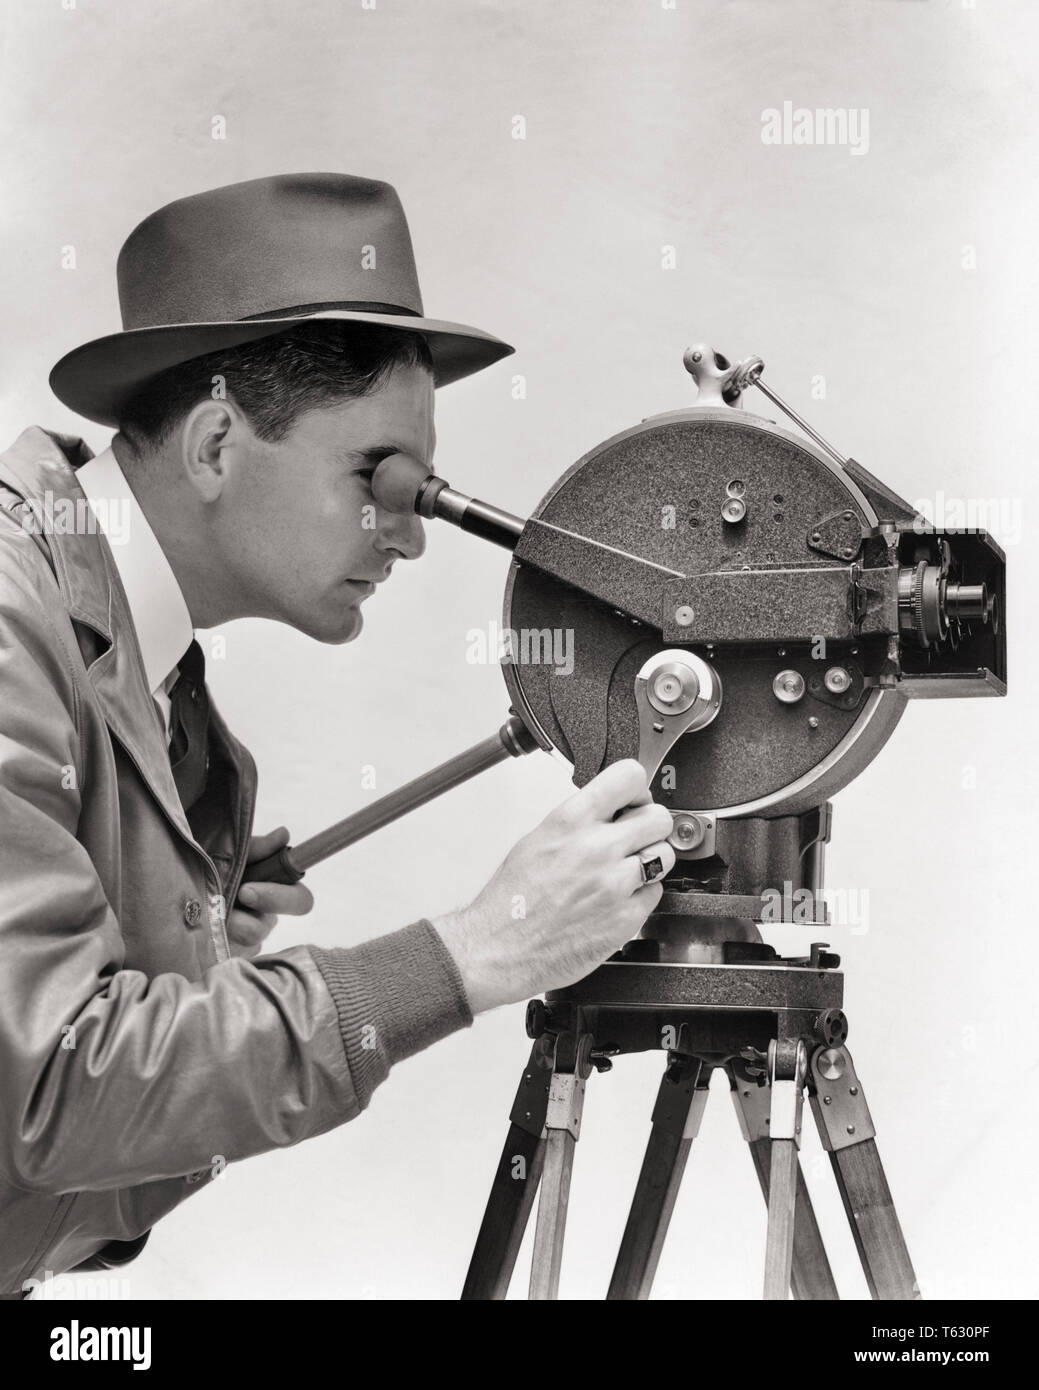 1930s PORTRAIT PROFILE MAN CINEMATOGRAPHER OPERATING AKELEY HAND CRANK PORTABLE 35 MM FILM MOVIE CAMERA MOUNTED ON TRIPOD - u137 HAR001 HARS HISTORY JOBS STUDIO SHOT RURAL FILMING COPY SPACE HALF-LENGTH PHYSICAL FITNESS PERSONS INSPIRATION MALES CAMERAMAN ENTERTAINMENT CONFIDENCE PORTABLE TRIPOD B&W SUCCESS PERFORMING ARTS VISION SKILL OCCUPATION HAPPINESS SKILLS OPERATING ADVENTURE AND EXCITEMENT KNOWLEDGE DIRECTION PHOTOGRAPHING BY ON OPPORTUNITY THE OCCUPATIONS USED CONCEPTUAL IMAGINATION STYLISH US ARMY CREATIVITY DIRECTORS IDEAS MID-ADULT MID-ADULT MAN MOUNTED BLACK AND WHITE CARL AKELEY - Stock Image